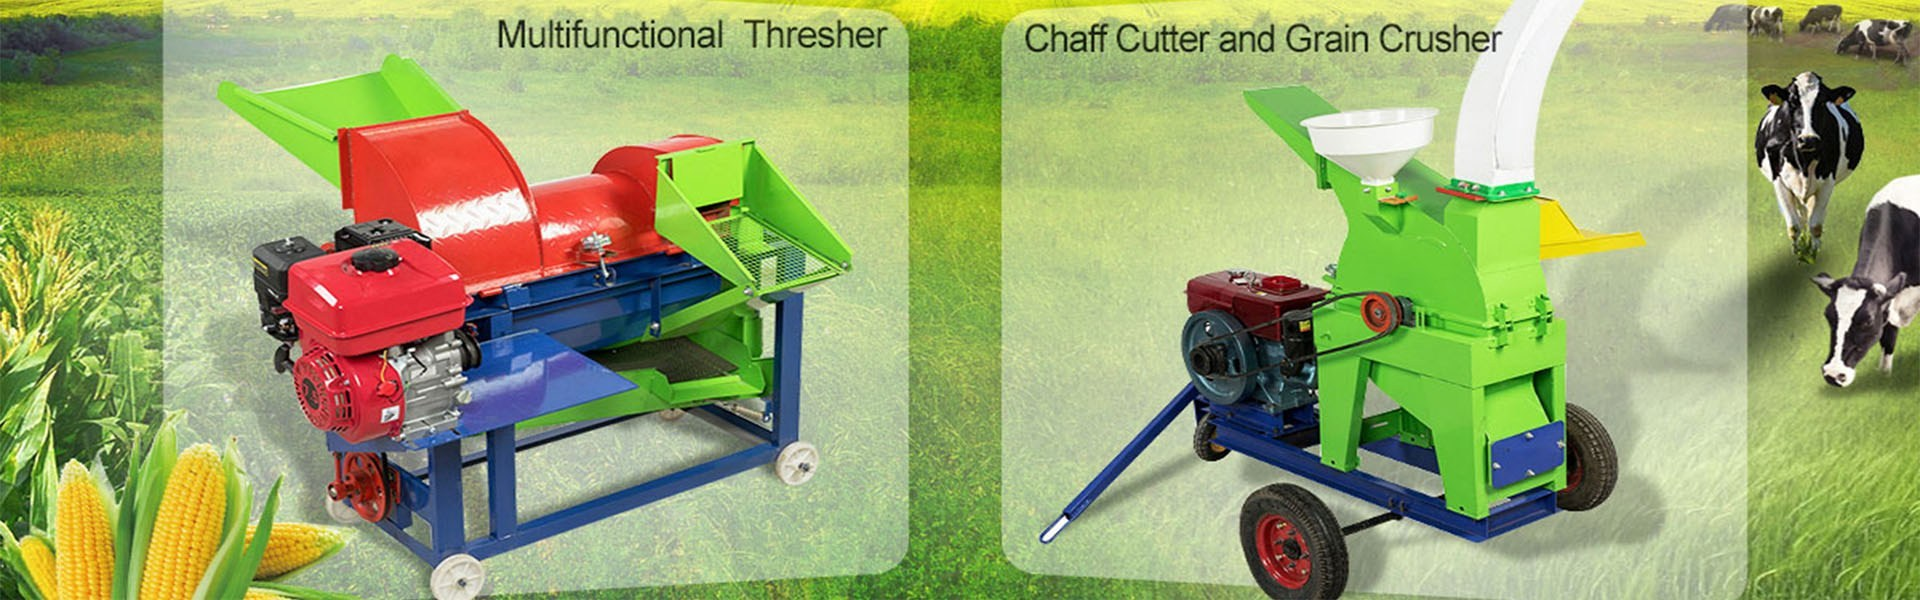 sheller machine price